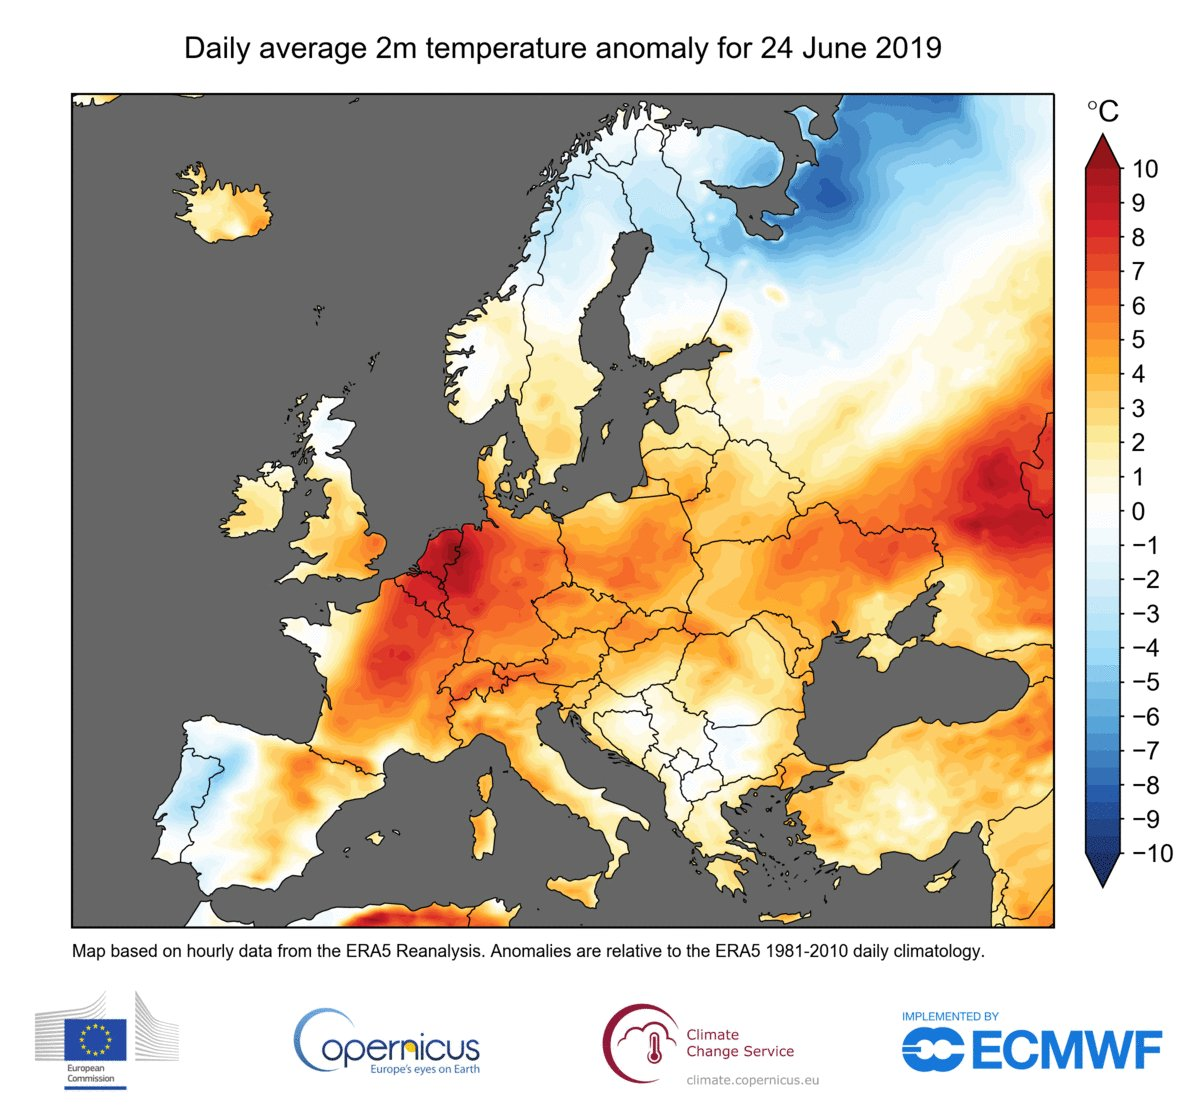 Last month 'hottest June on record' as heatwave swept Europe